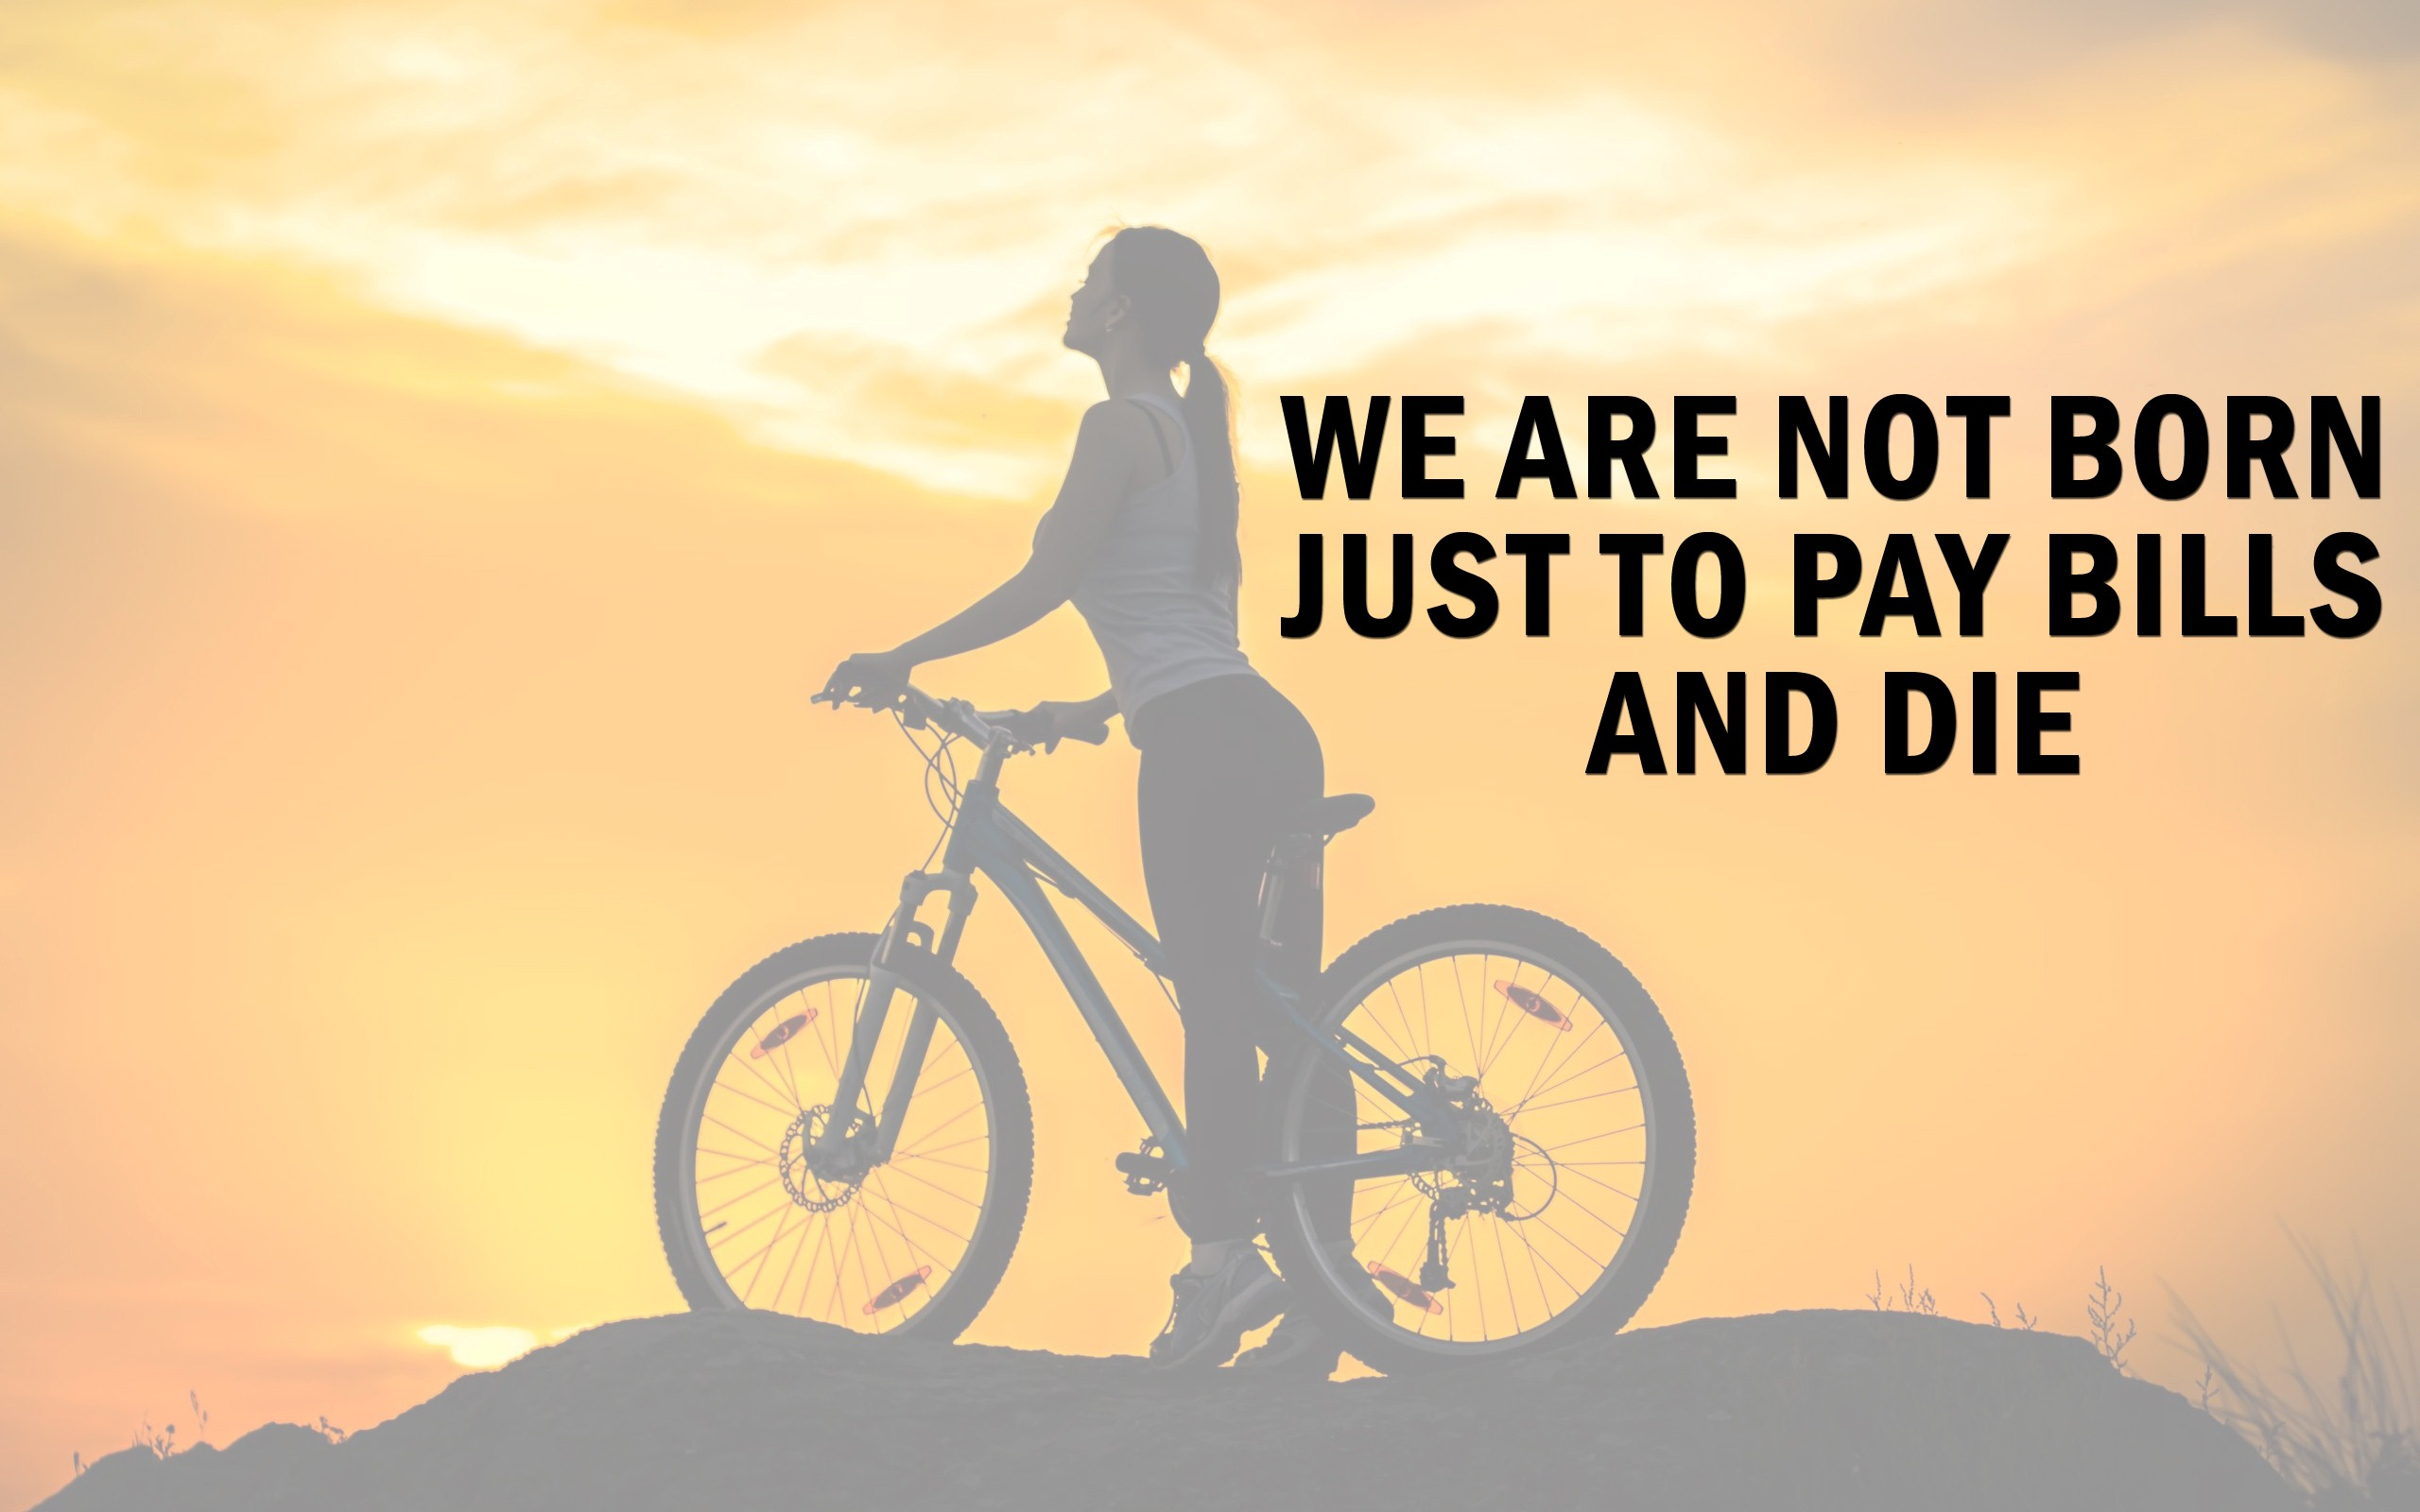 Hd Motivational Wallpapers For Android Download Hd Wallpaper For Free Download Images For Free